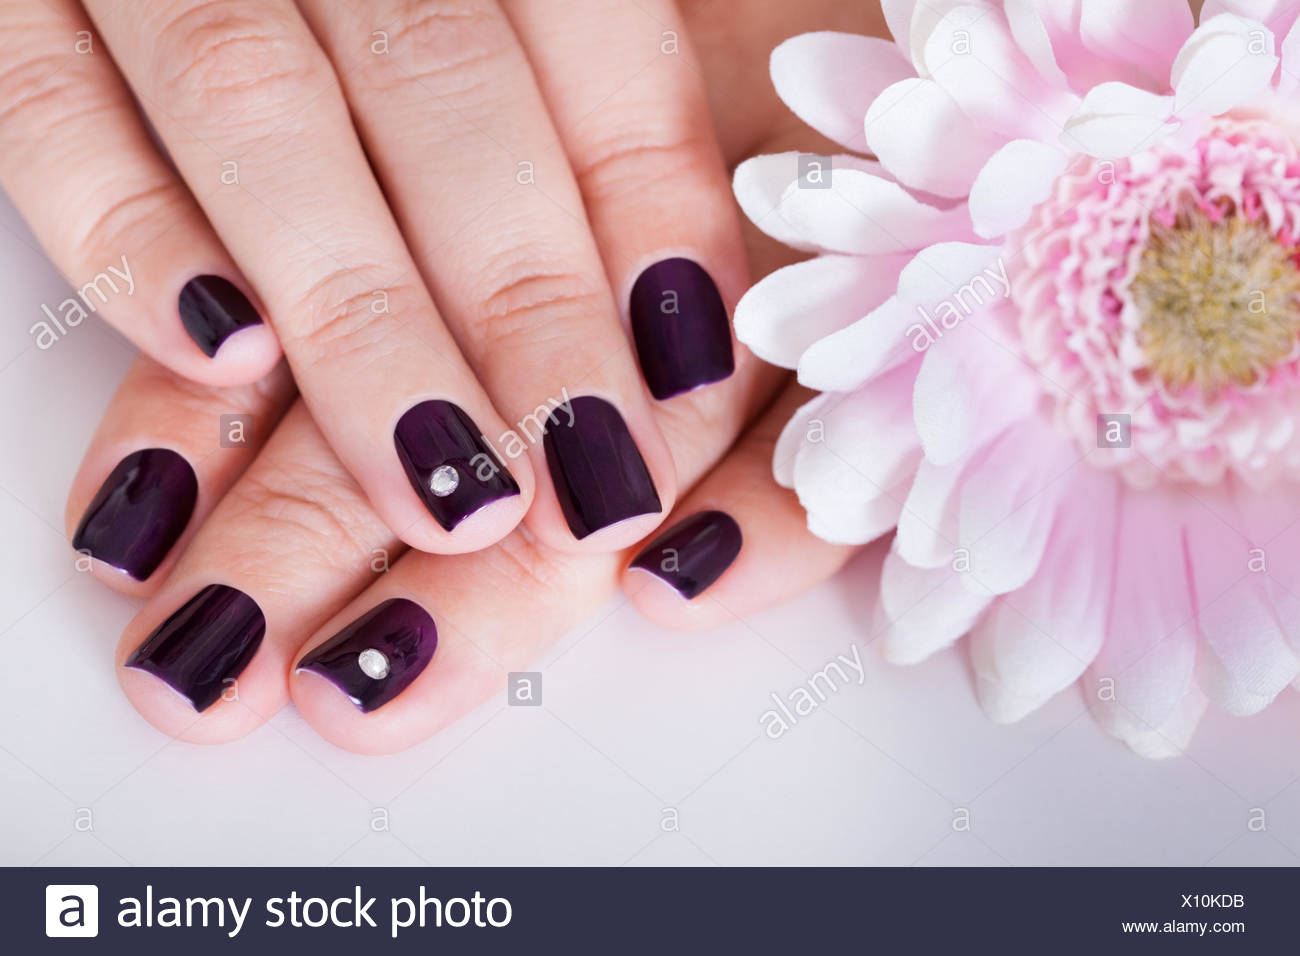 Beautiful manicured nails with purple nail varnish and a tiny ...